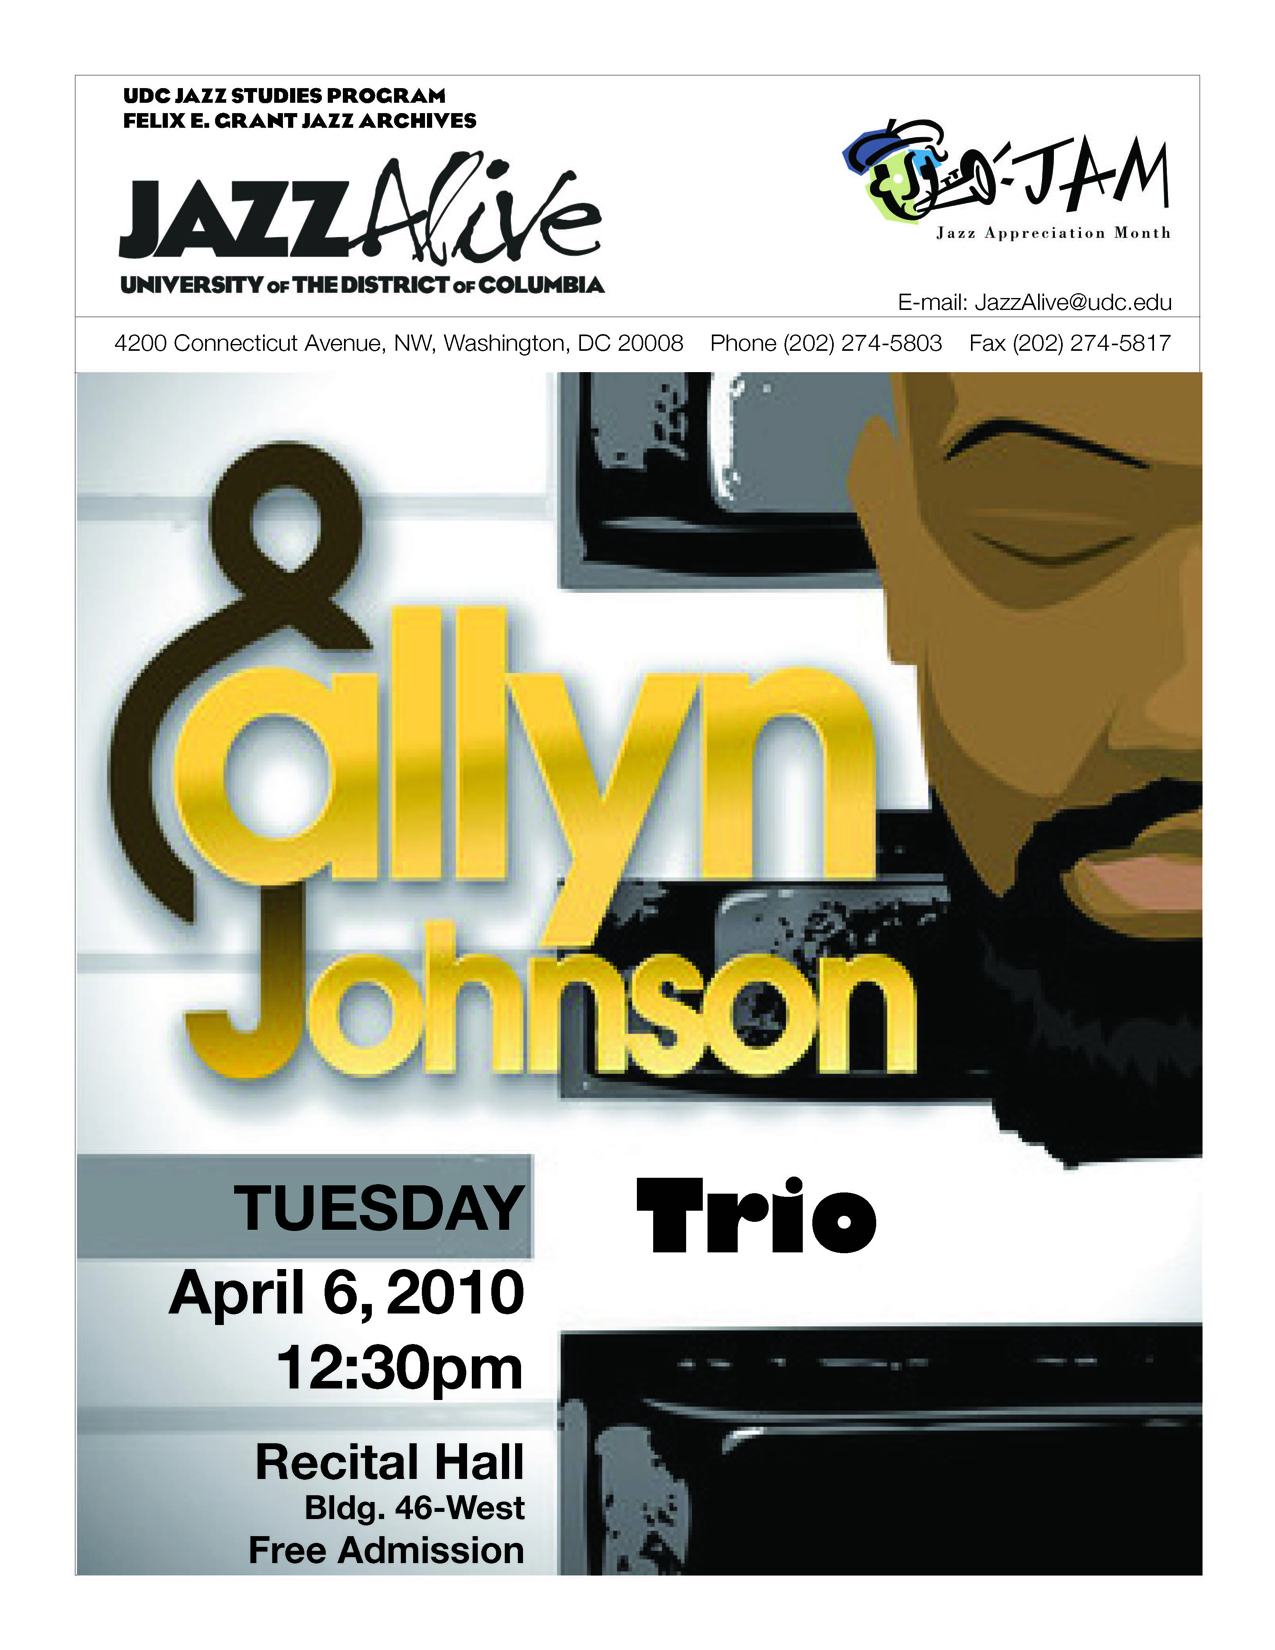 Jam@Udc 2010 - Allyn Johnson Trio - Tuesday, April 6, 2010, 12:30 PM - Free and Open to the Public